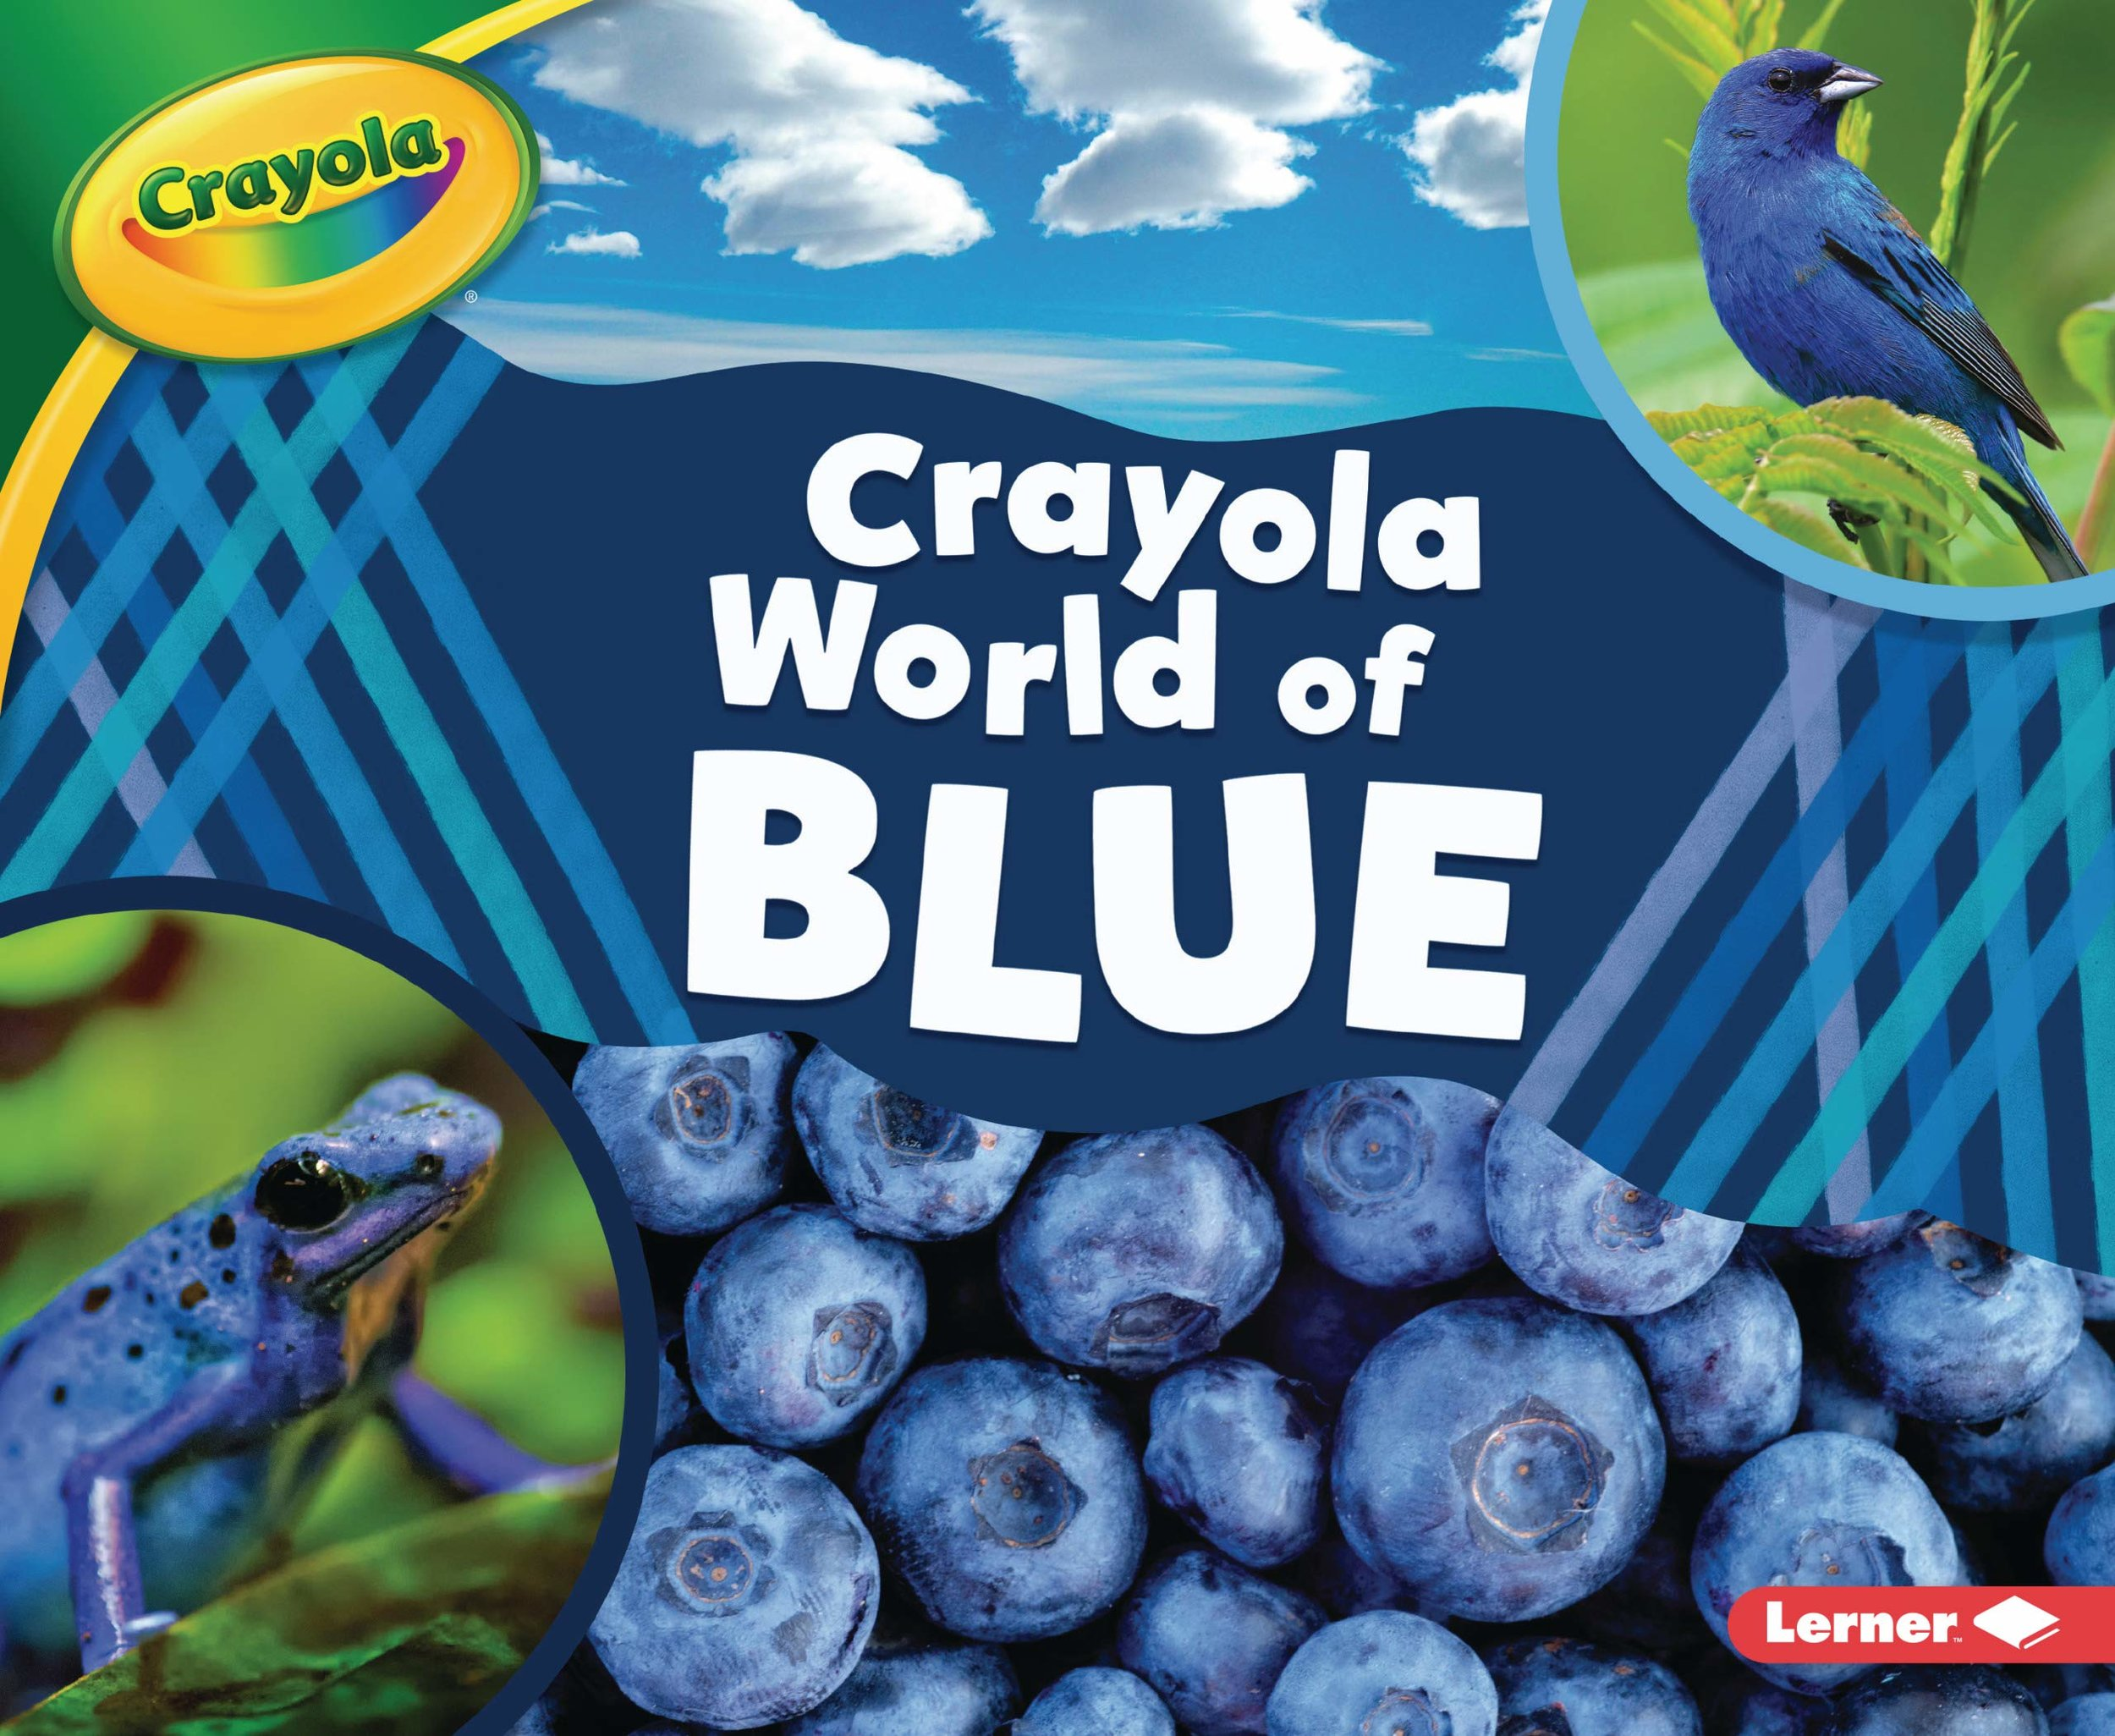 Crayola World of Blue cover.jpg